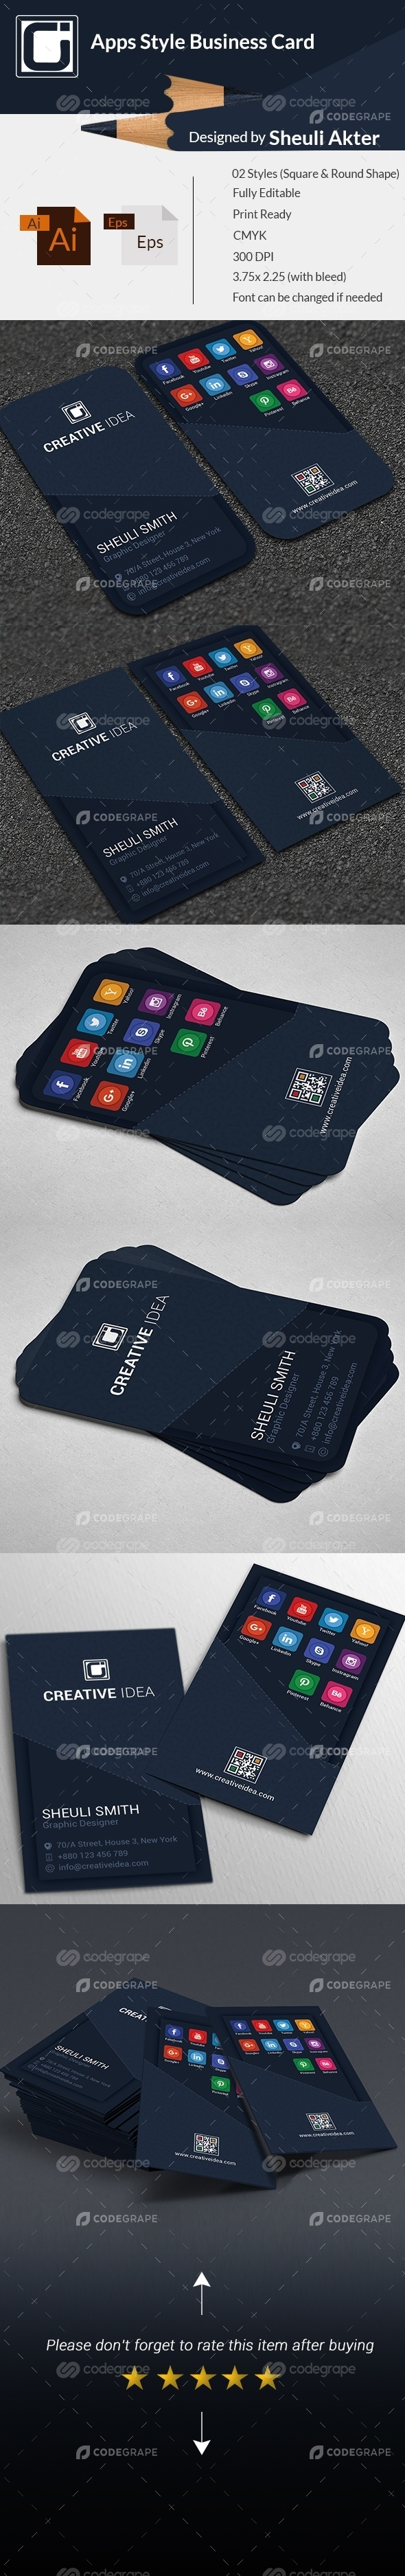 Apps Style Business Card